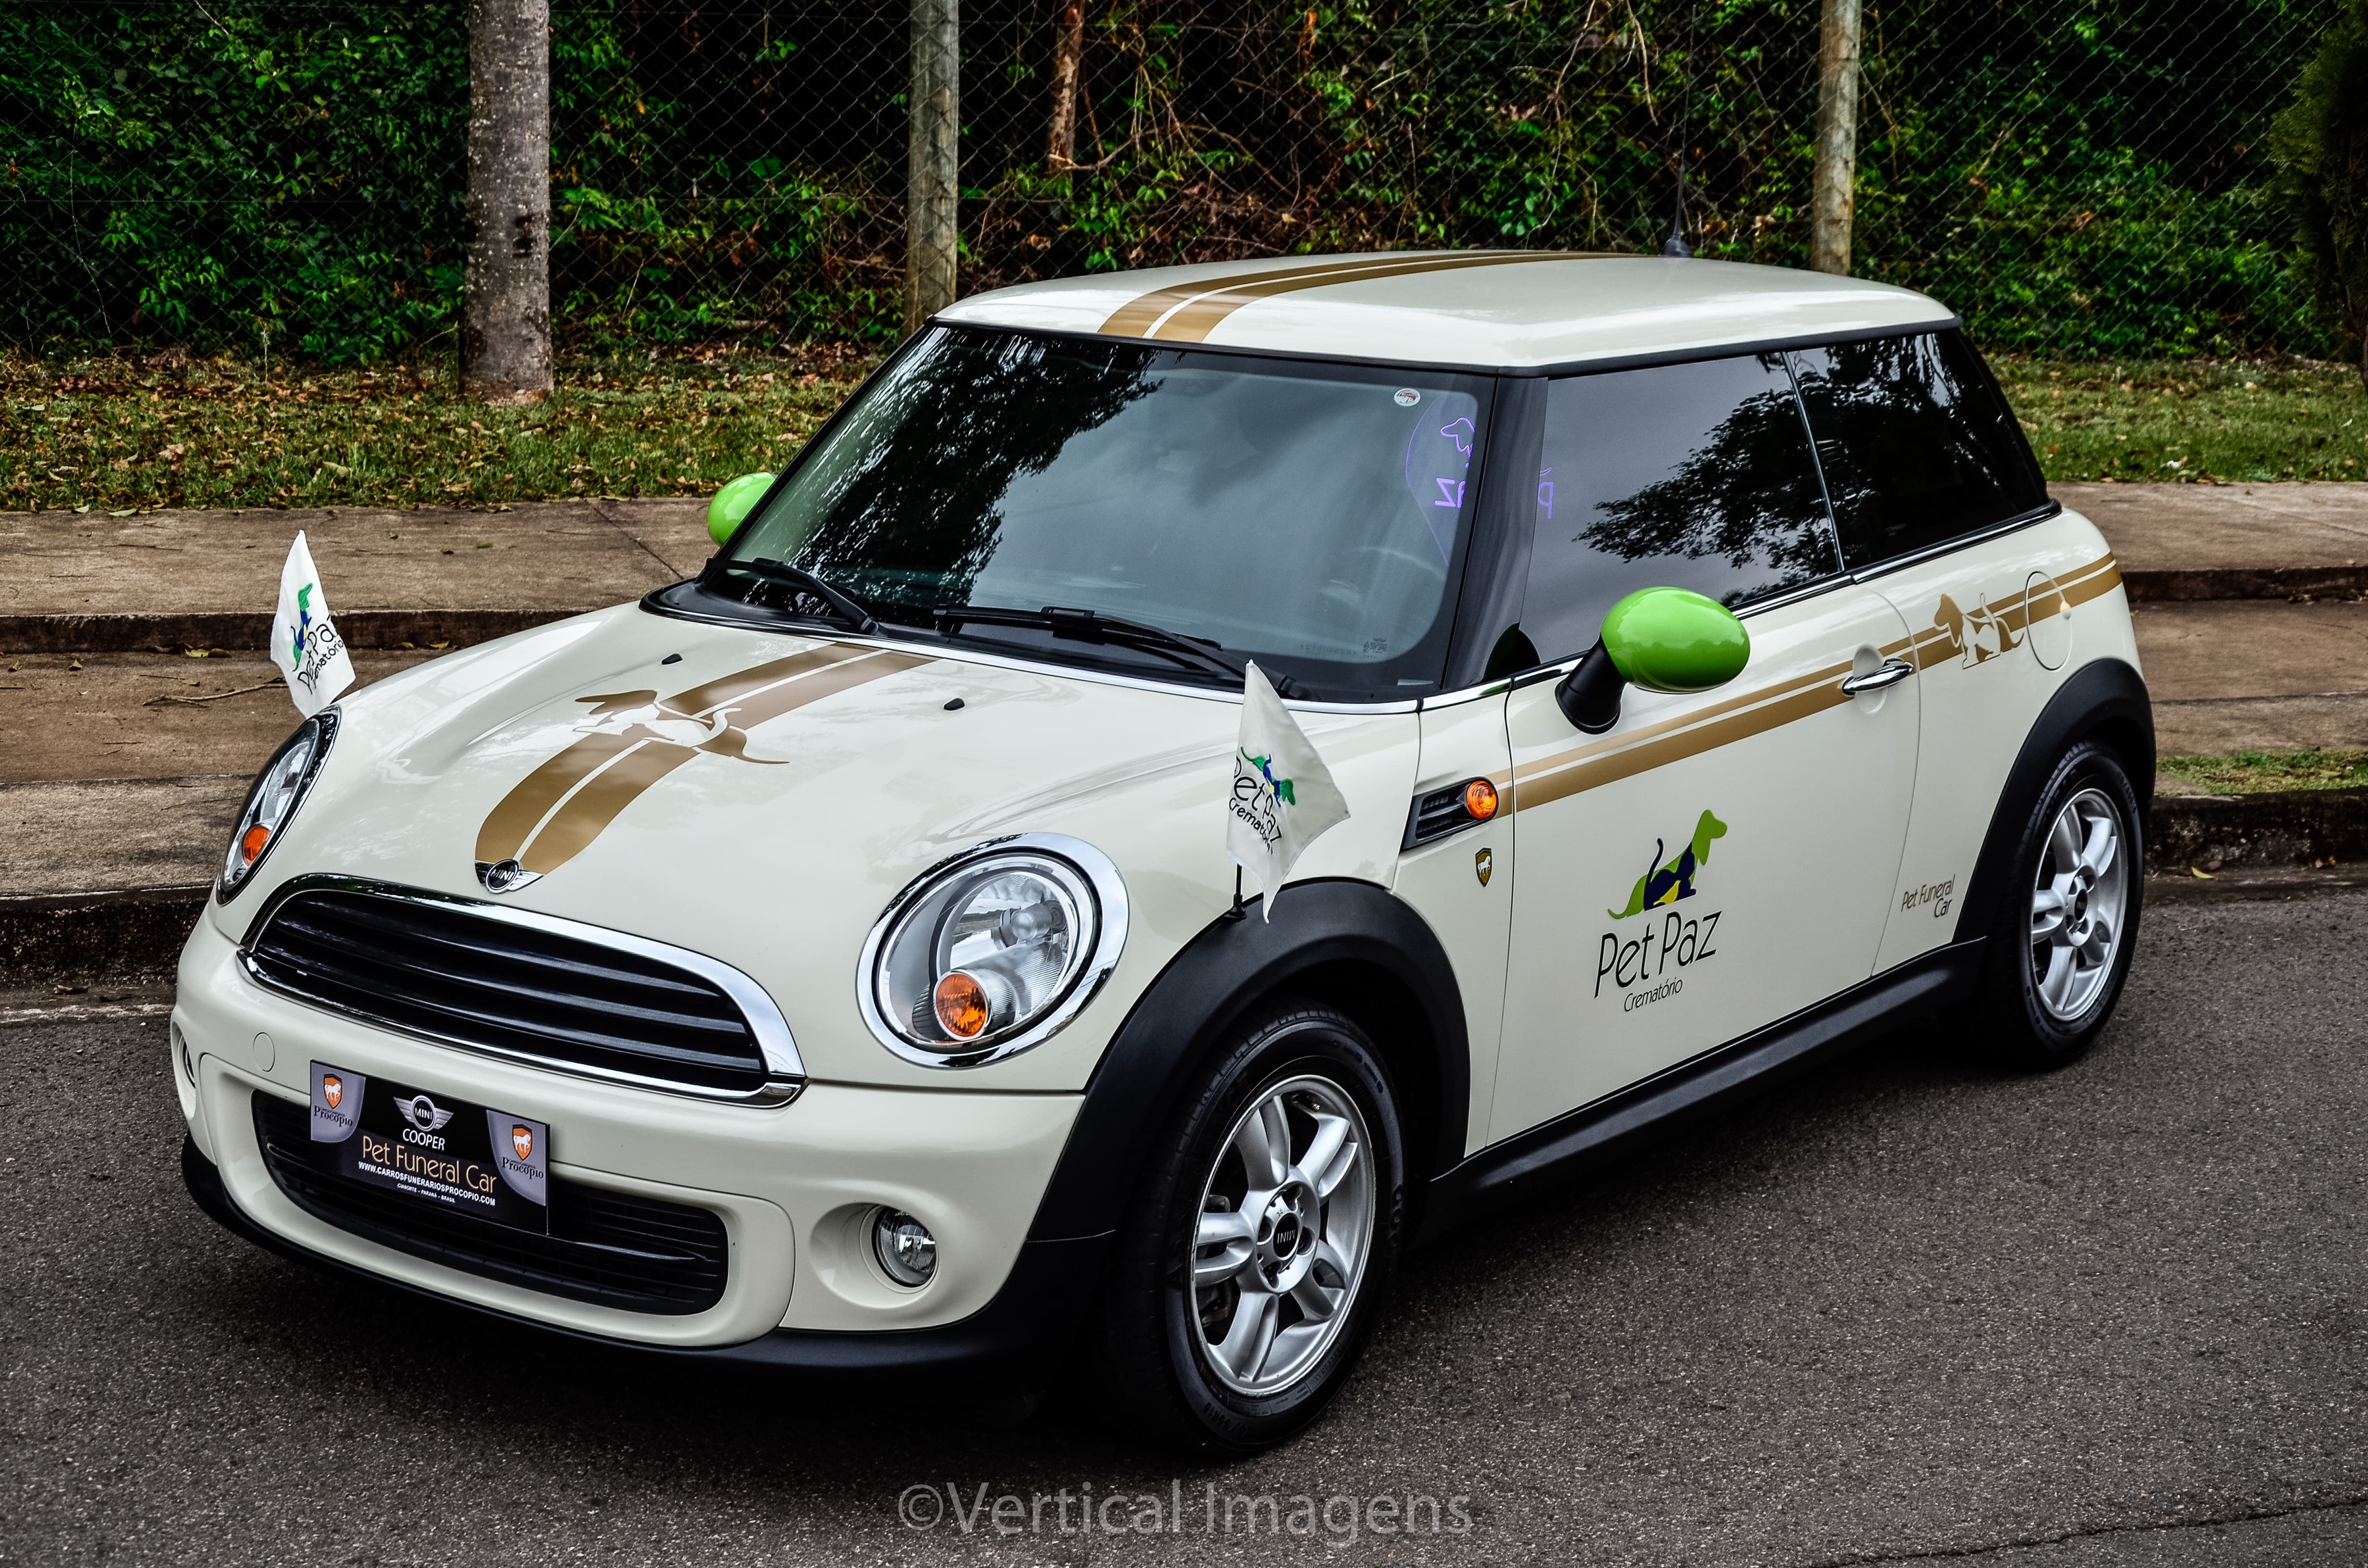 pet funeral mini cooper frente